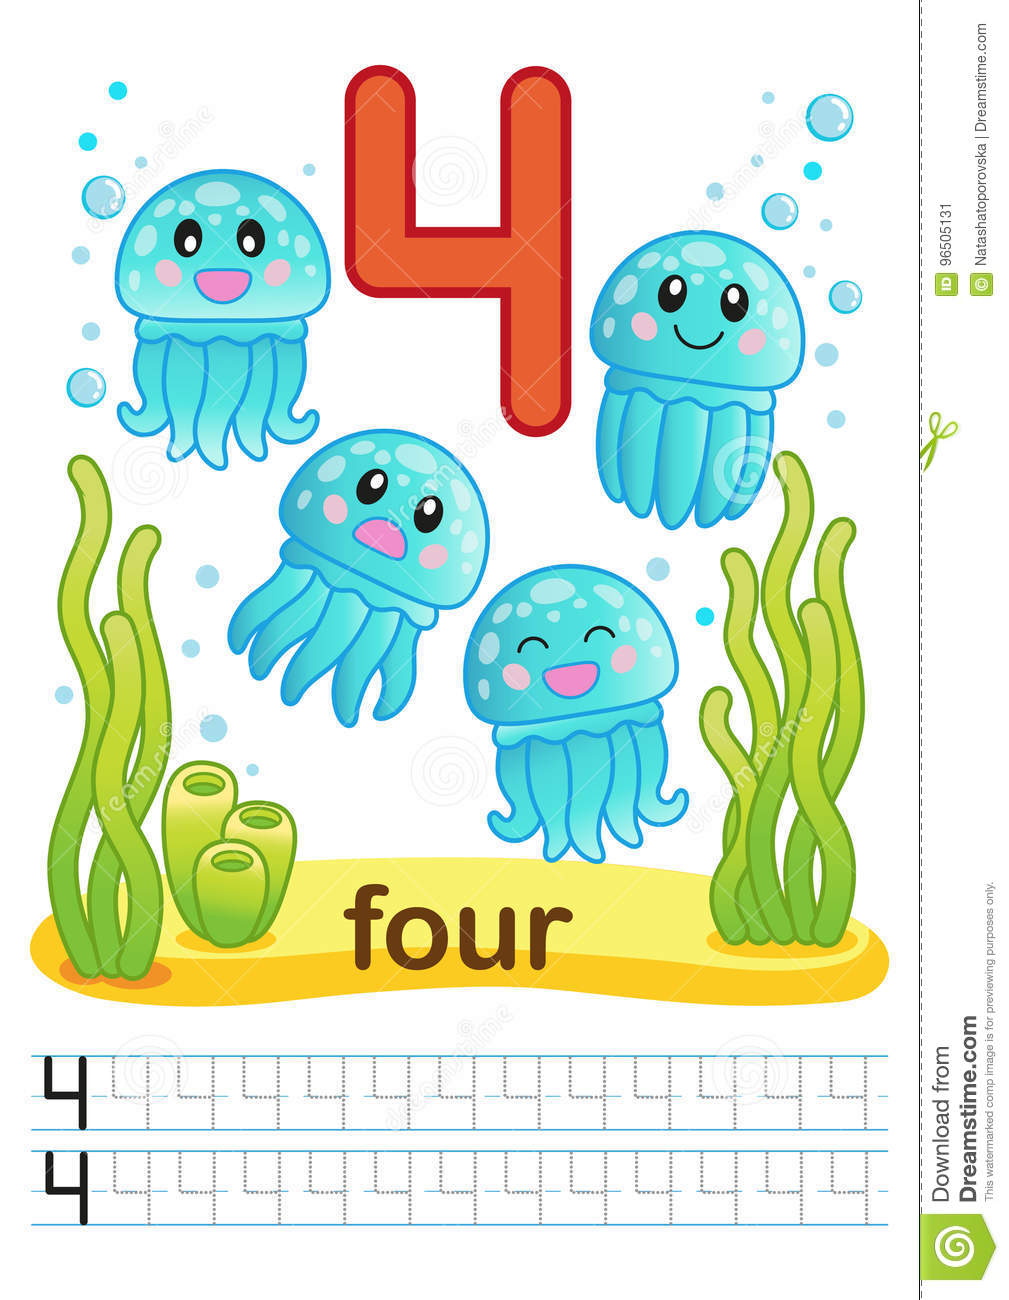 Printable Worksheet For Kindergarten And Preschool. We Train To ...